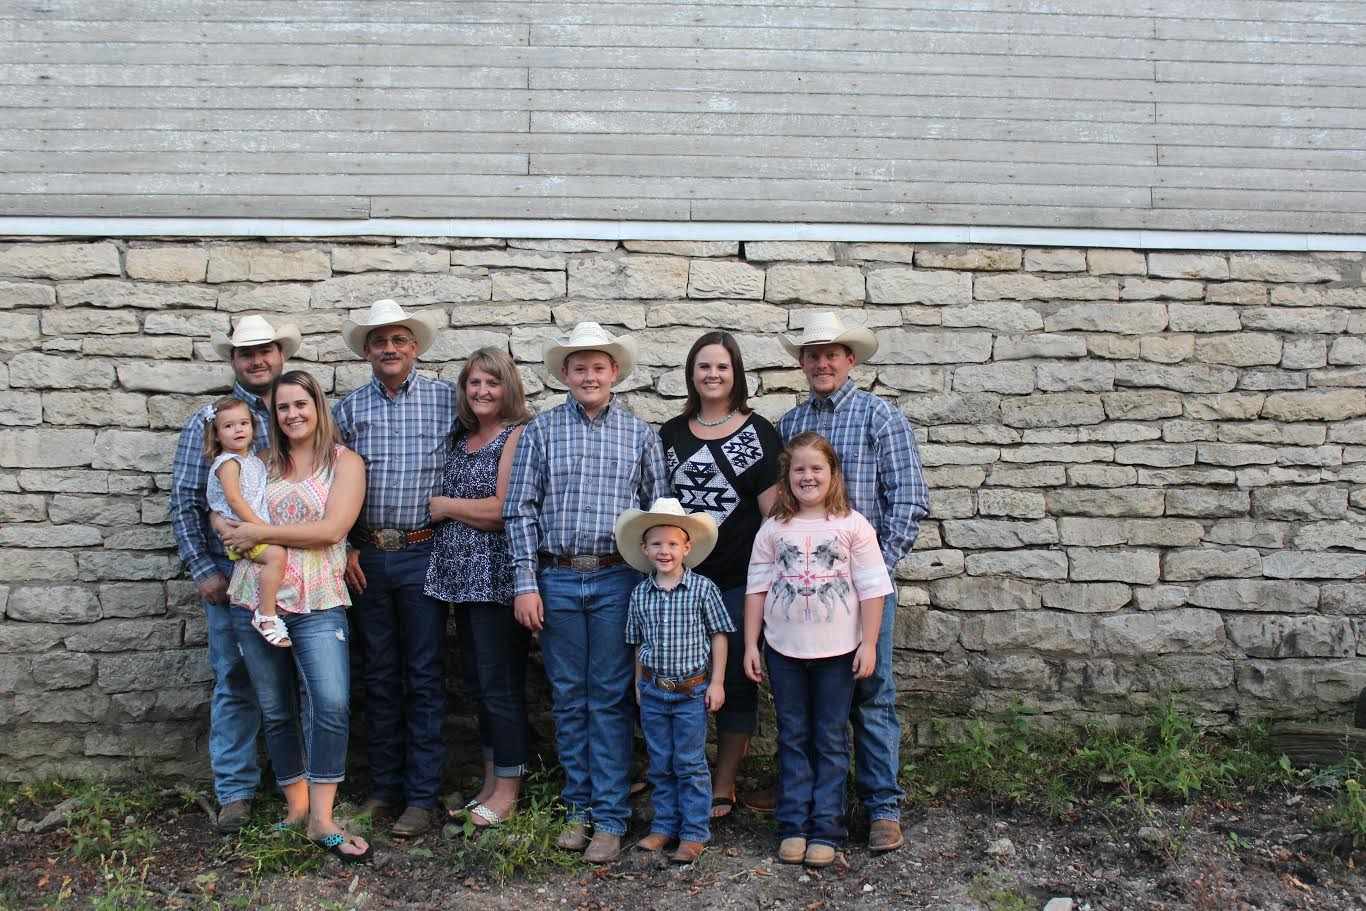 Flint Hills Genetics is a family bucking bull breeding operation at Strong City. The partners include (left to right) Adam, Kelsey and Lakin Spain; Kim, Lana and Wyatt Reyer; and Jenna, Tate, Karlie and Kyle Gibb.